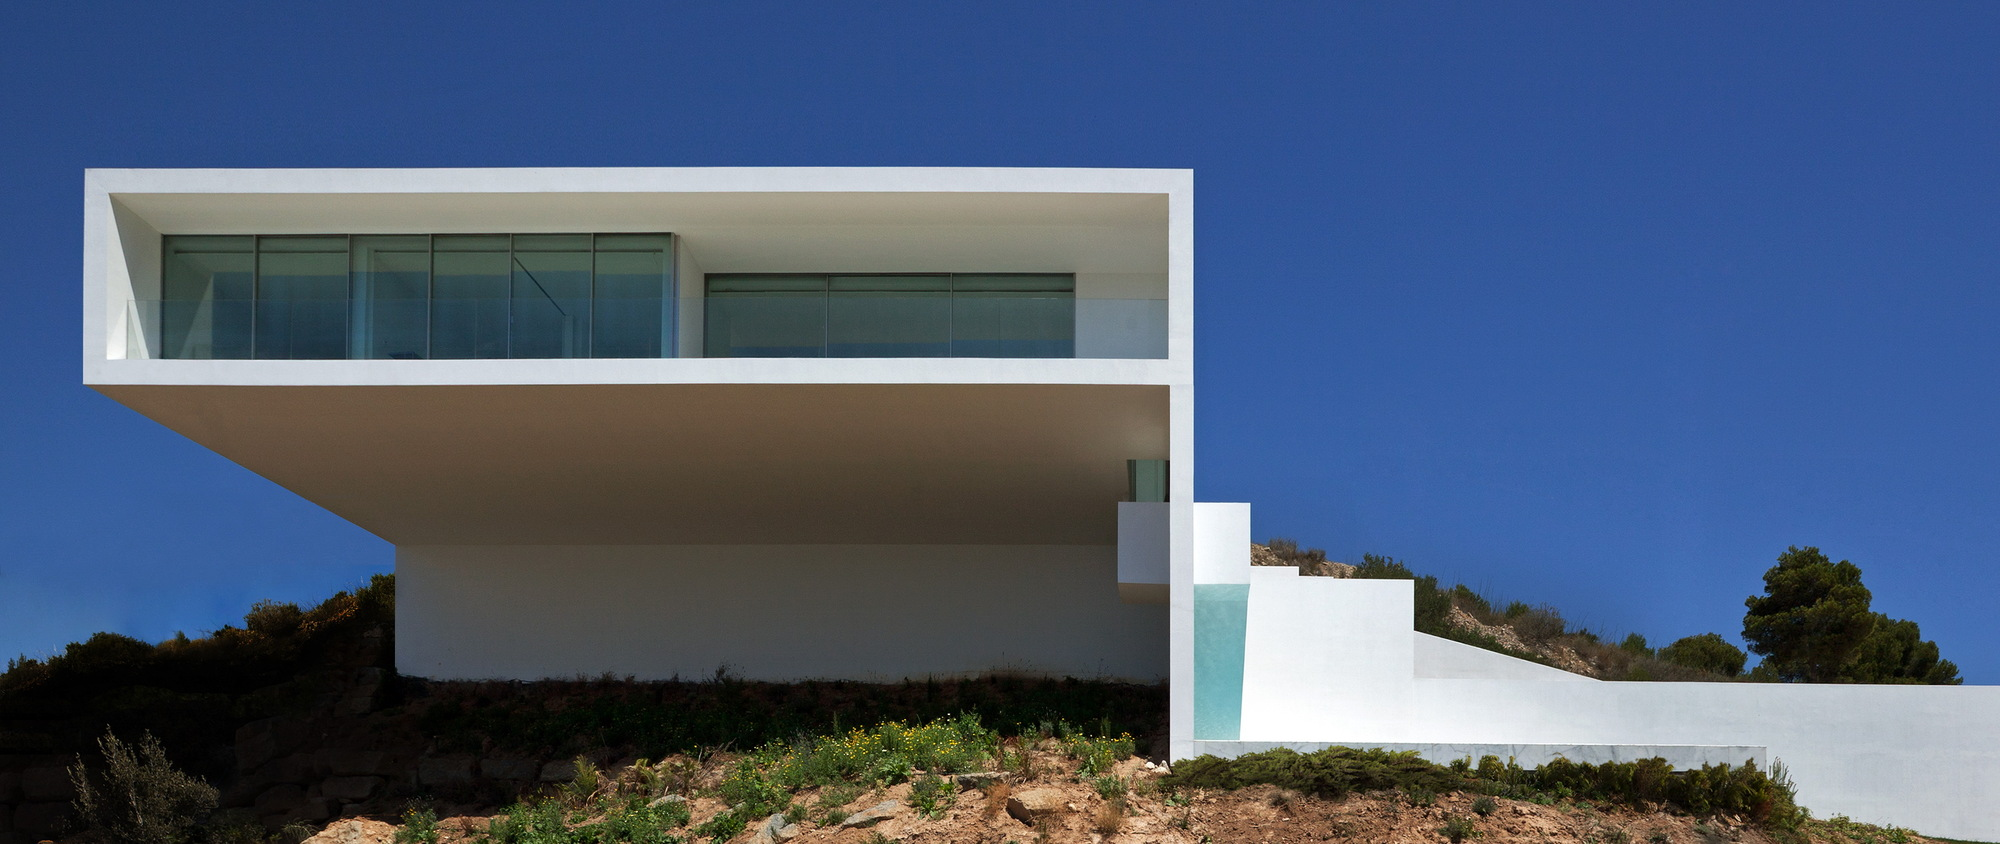 House on the cliff casa del acantilado fran silvestre for Casa del jardin